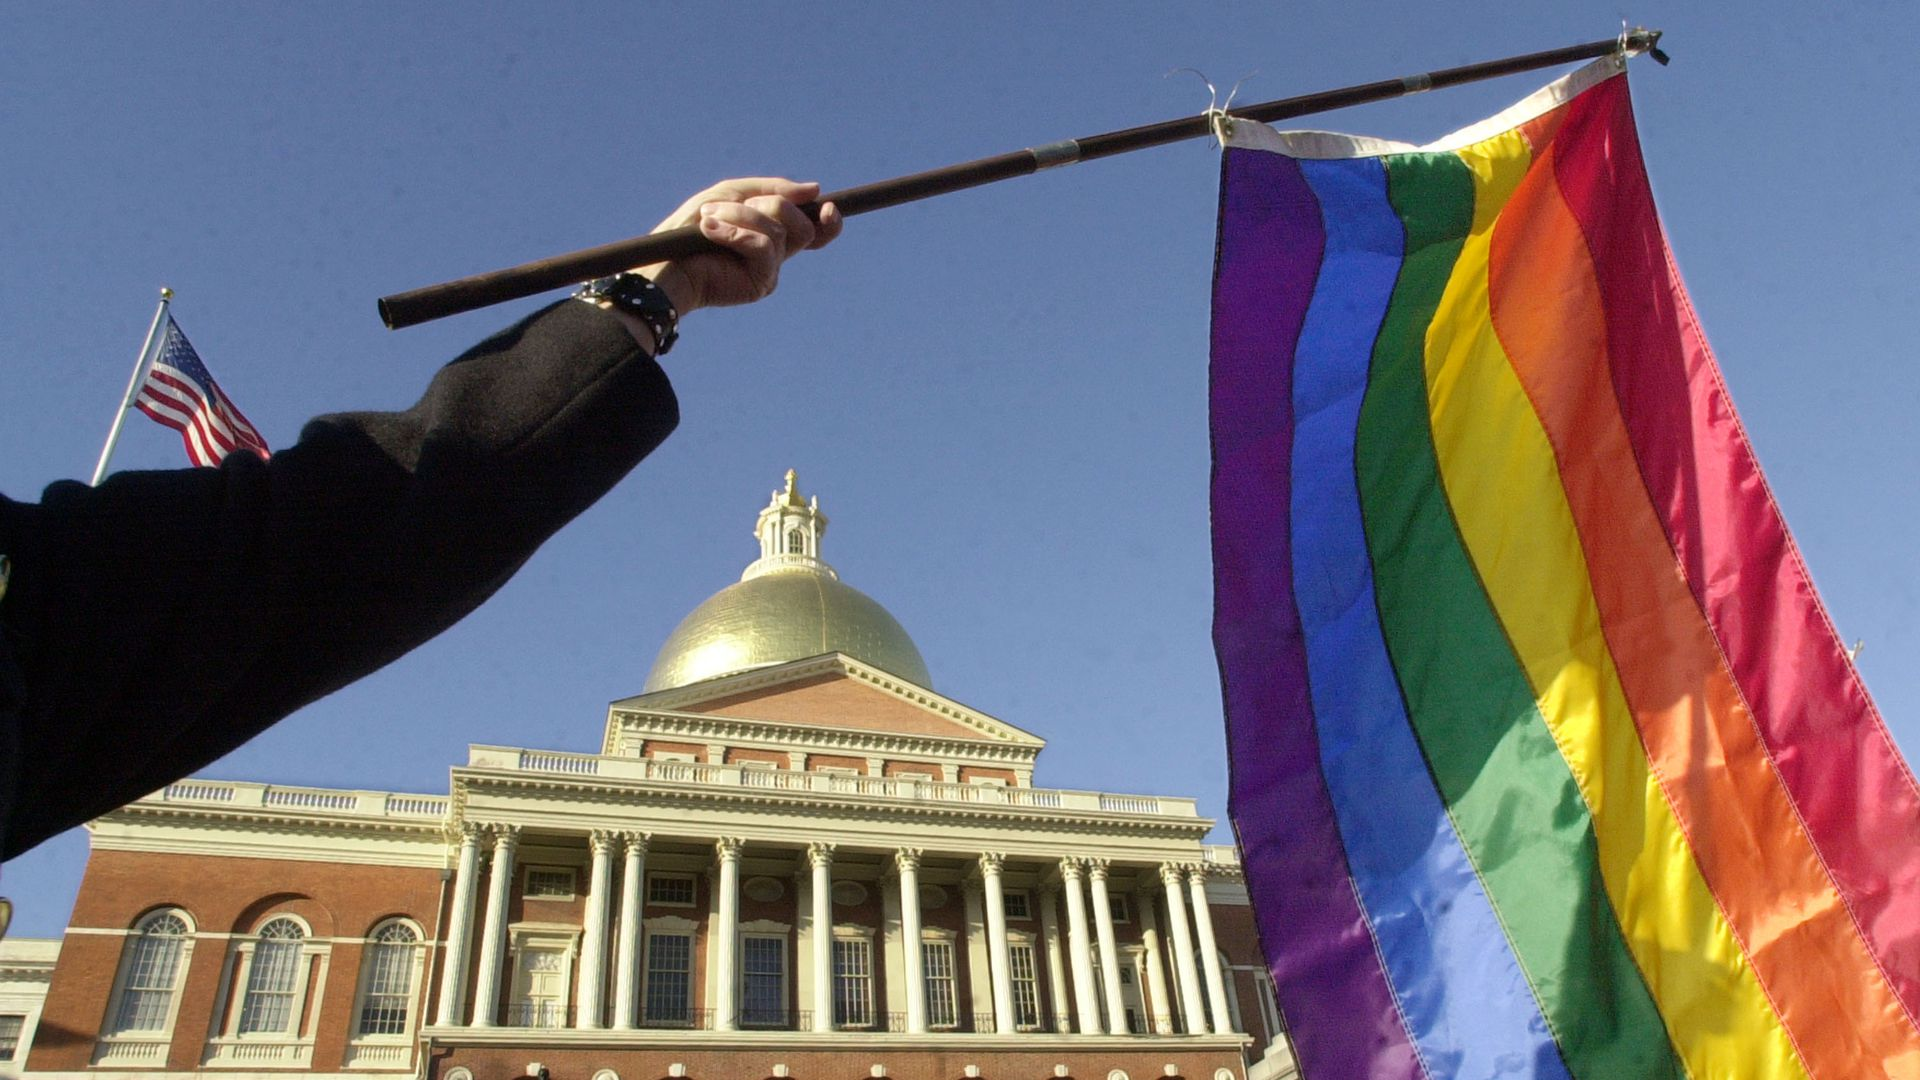 A supporter of gay marriage waves a rainbow flag outside the Massachusetts State House,